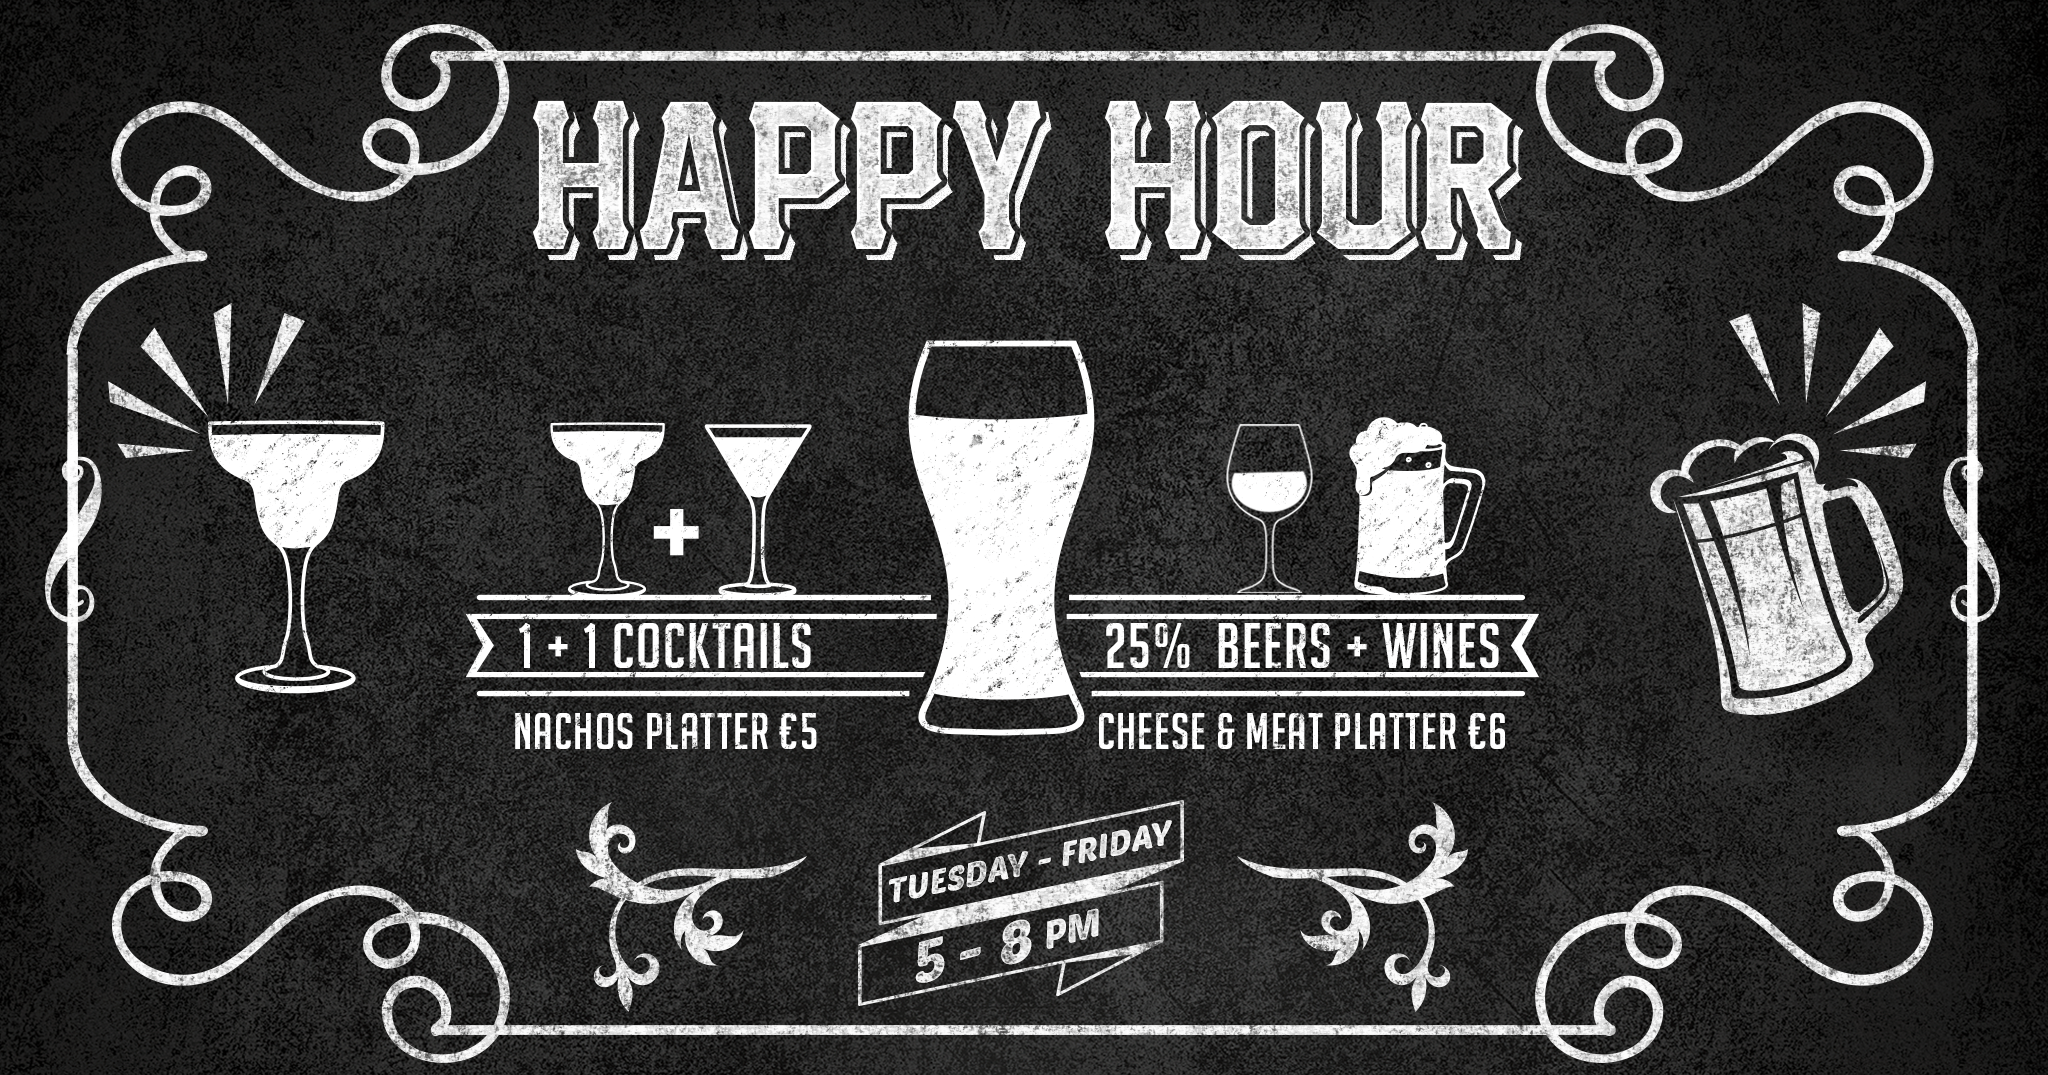 iCreate Web Design | Graphics | Flyer + Poster | Fubar Happy Hour